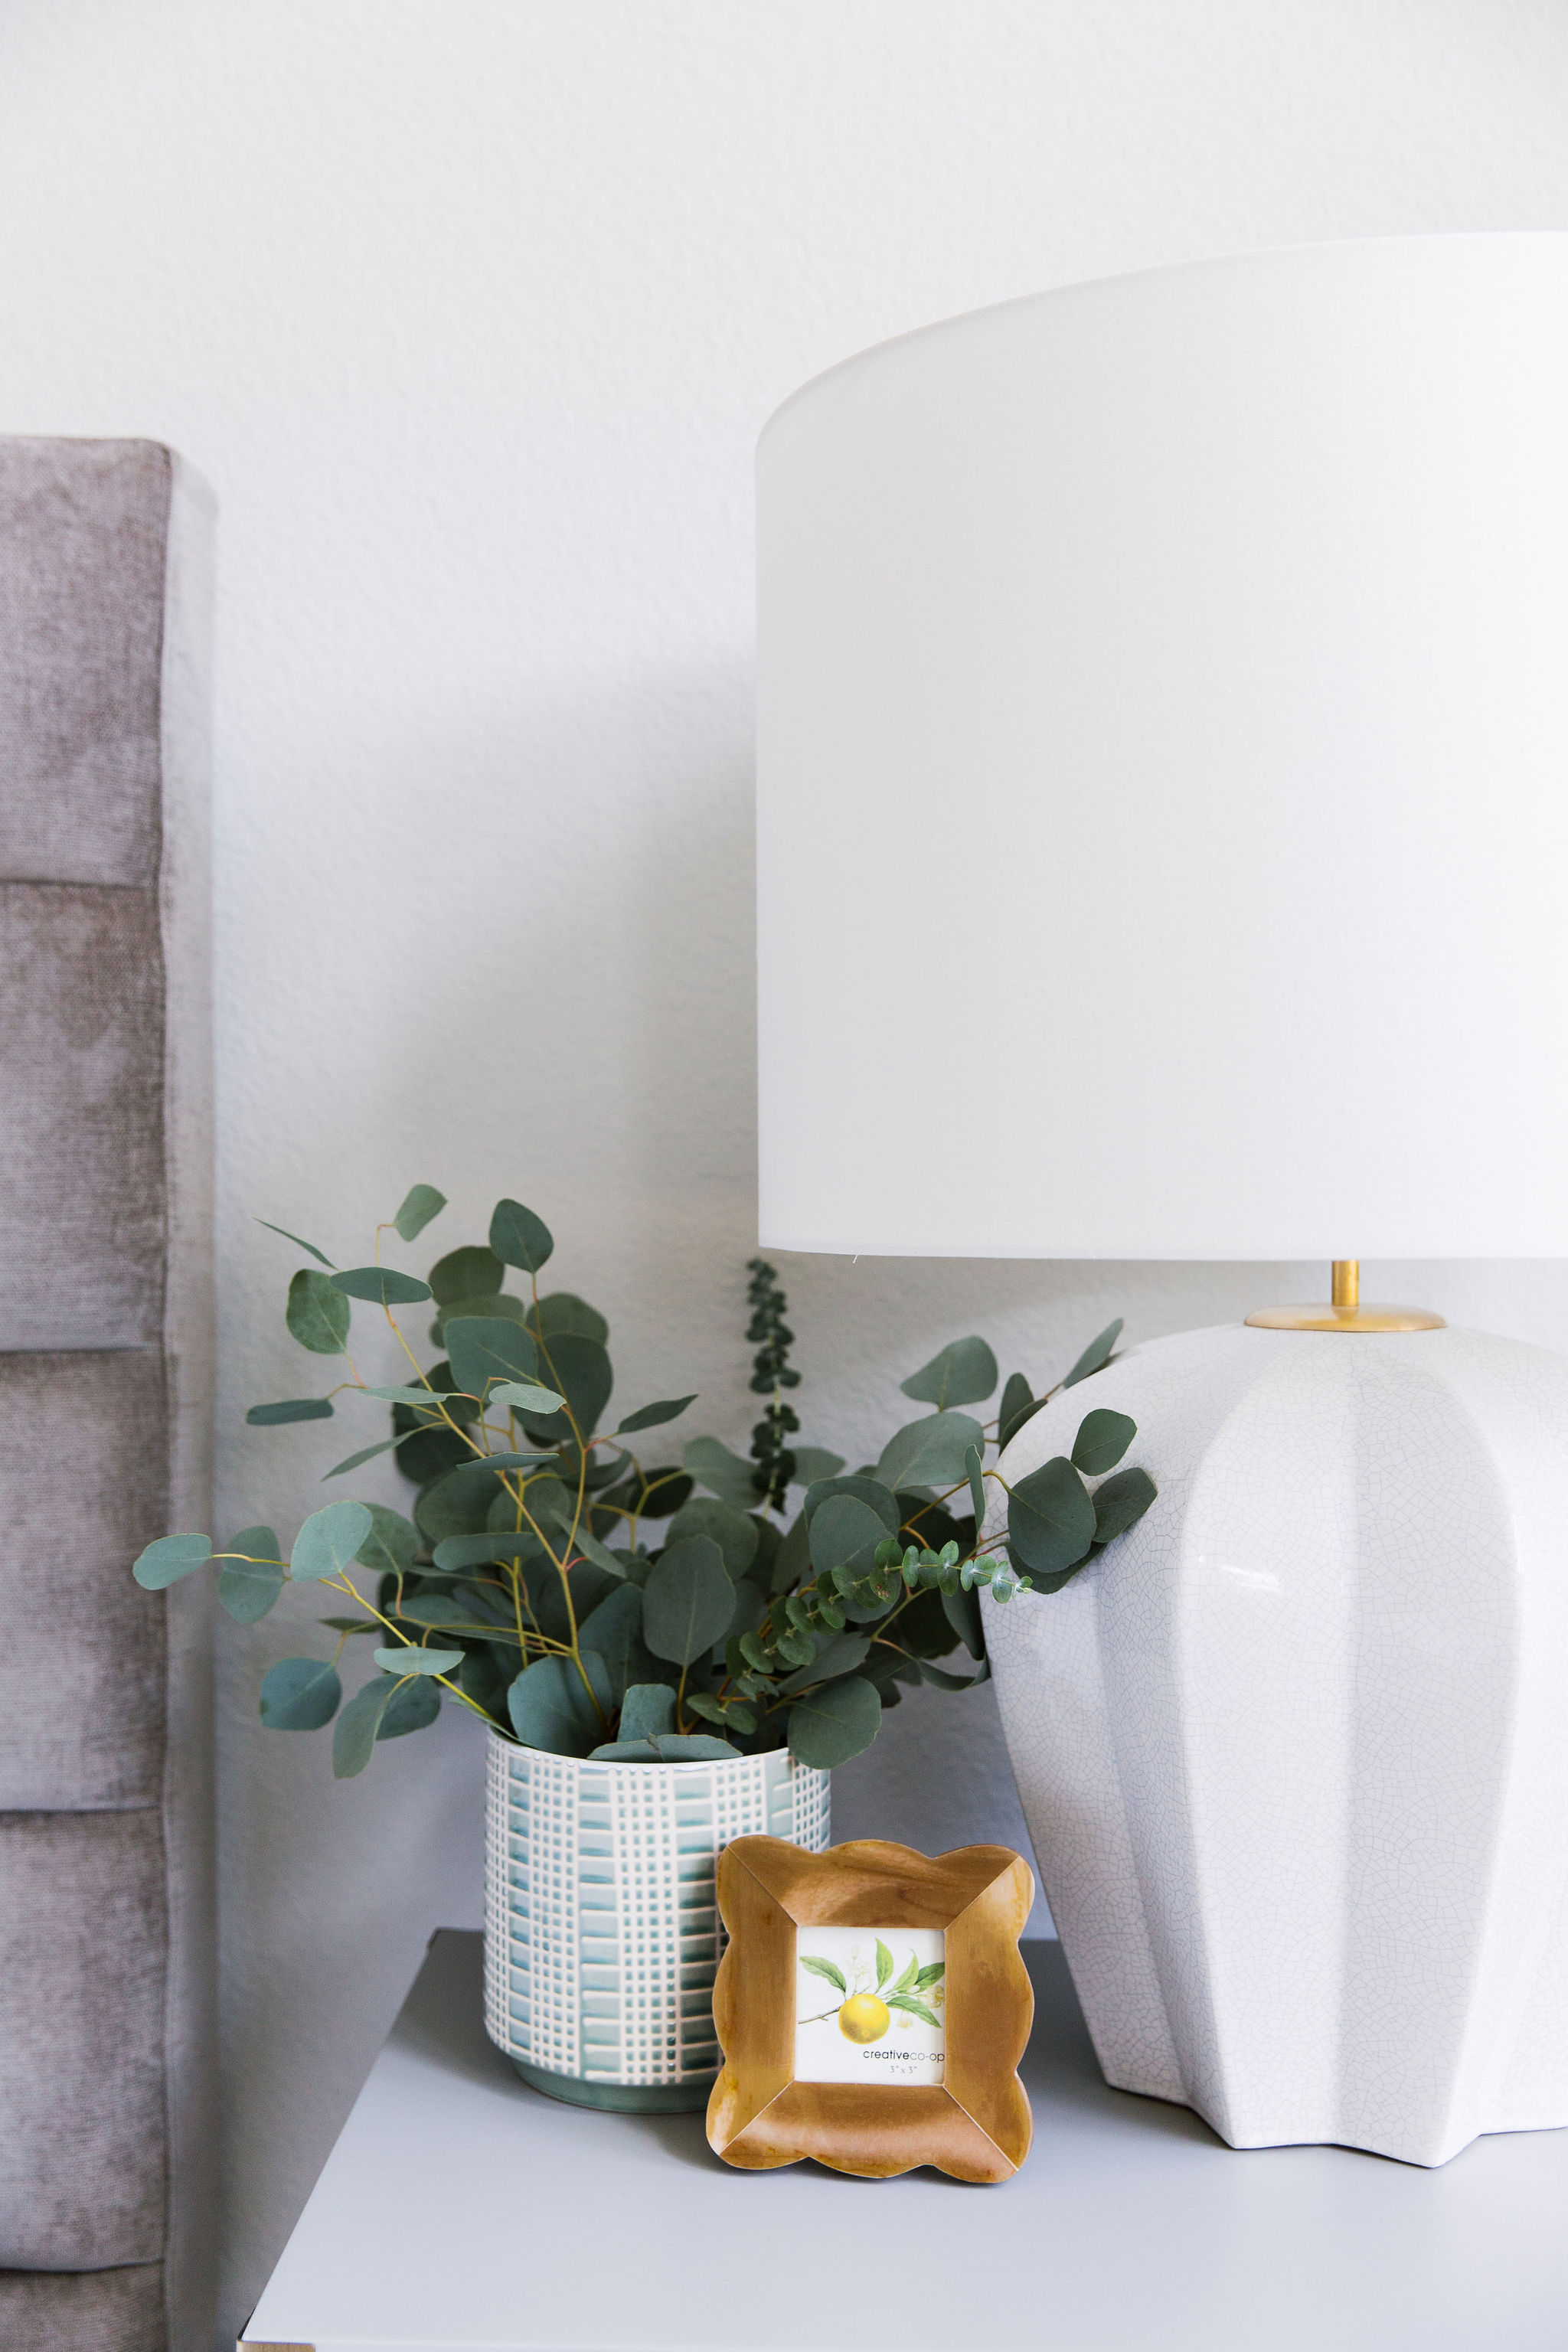 Nightstand design and styling by Laura D